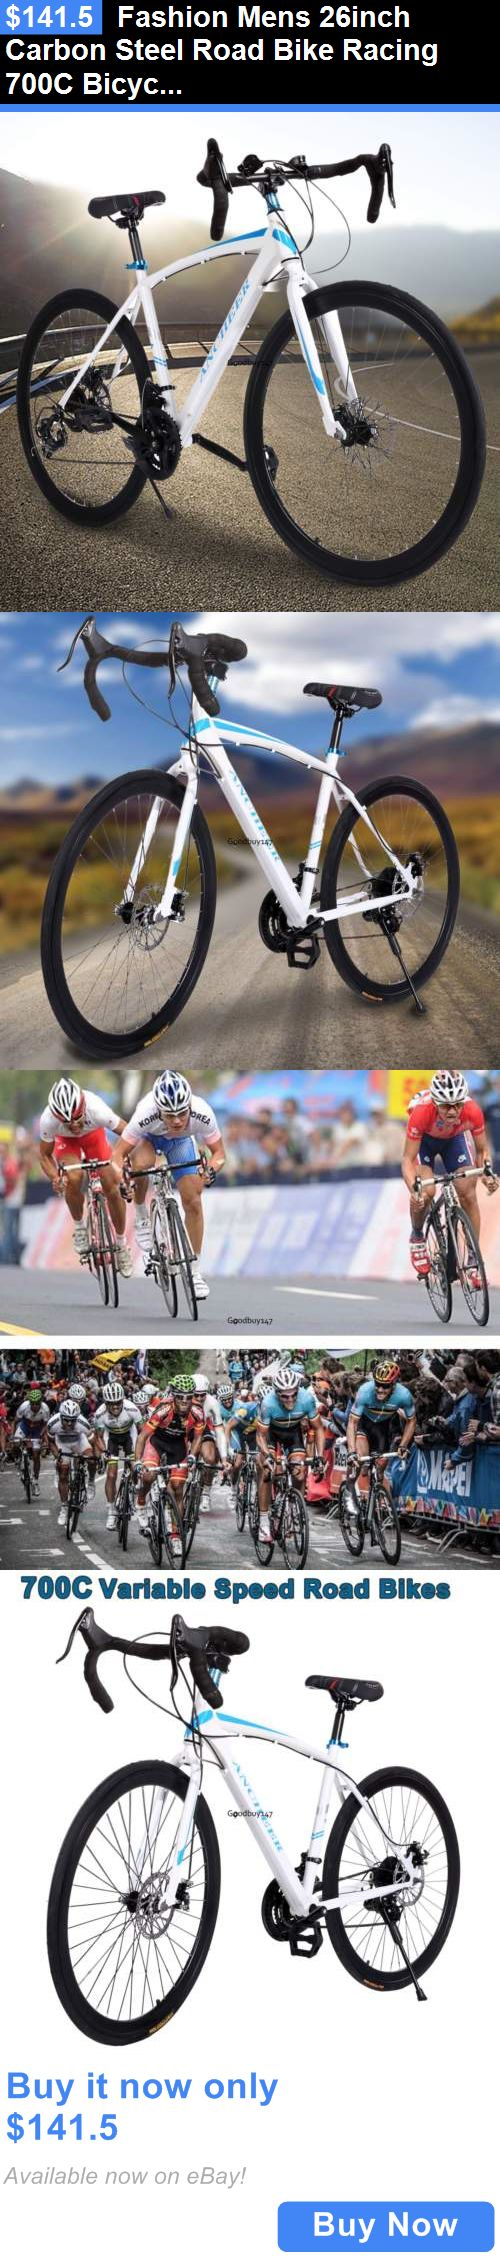 bicycles: Fashion Mens 26Inch Carbon Steel Road Bike Racing 700C Bicycle 21 Speed White BUY IT NOW ONLY: $141.5